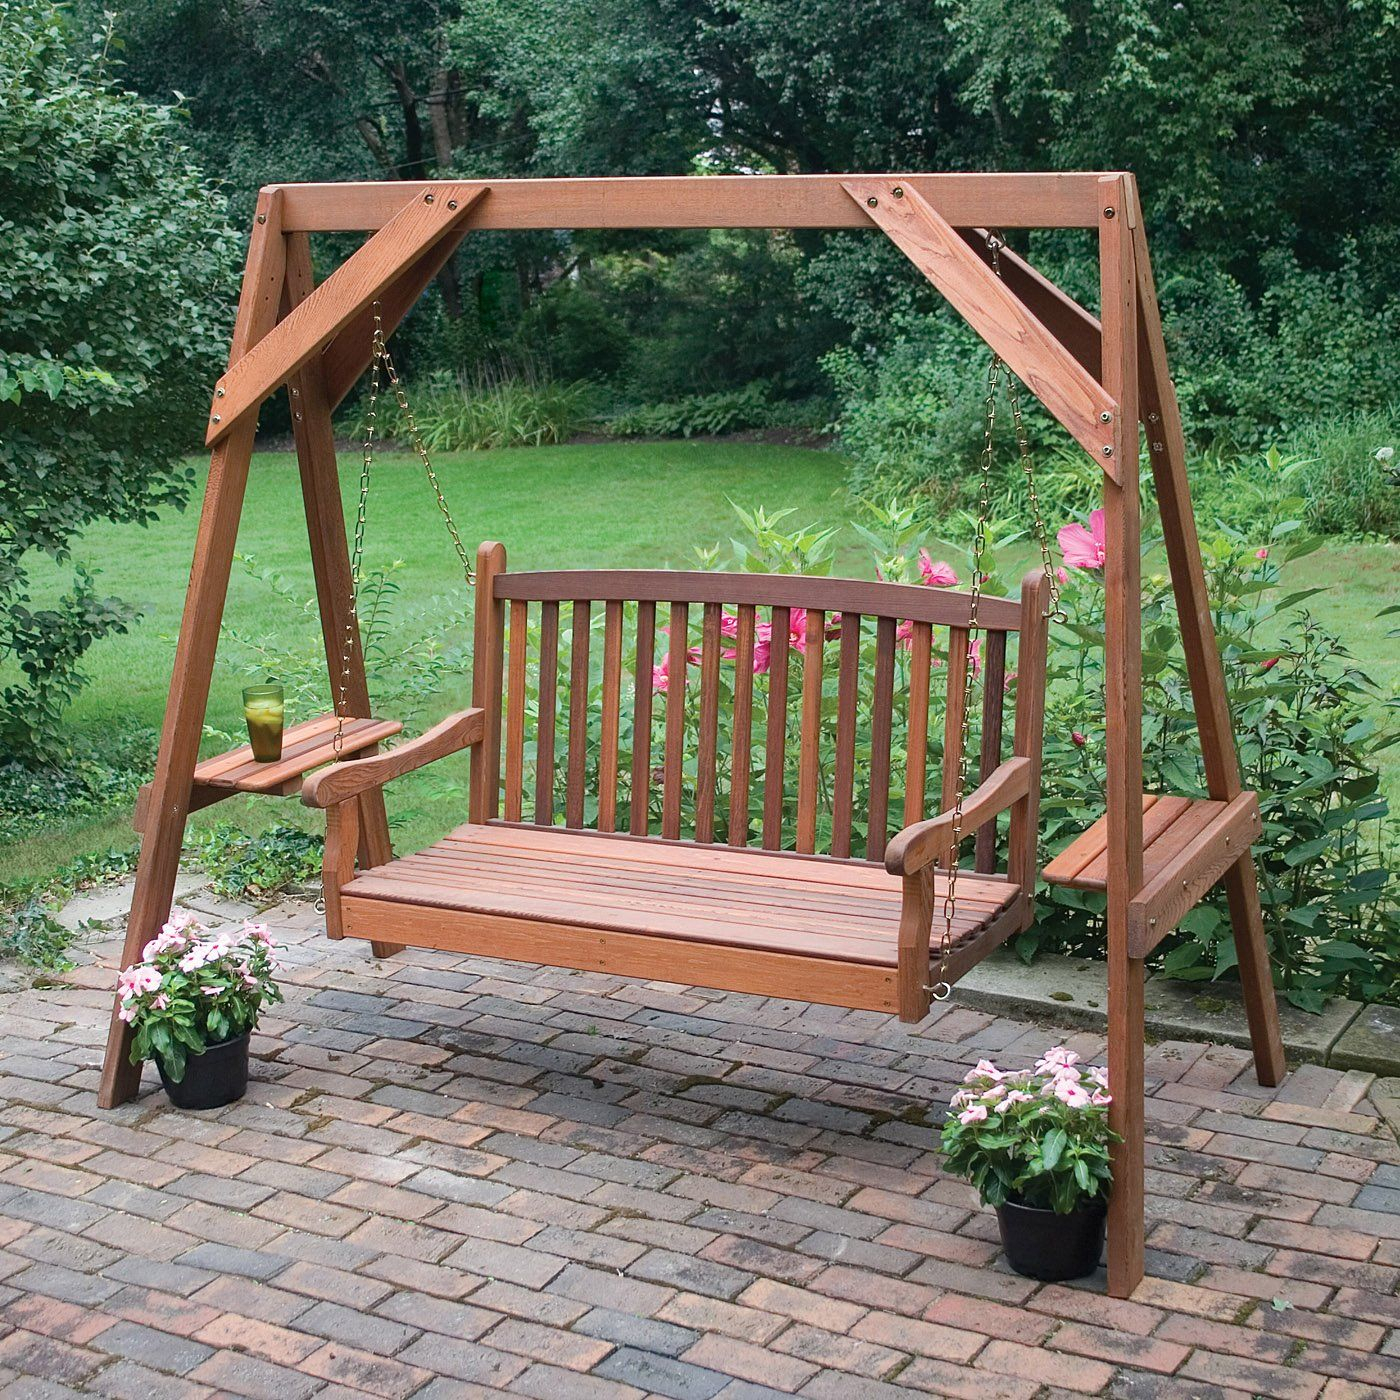 Pindoesn't Matter On Cozy Corners | Garden Swing Seat In Patio Porch Swings With Stand (View 15 of 25)